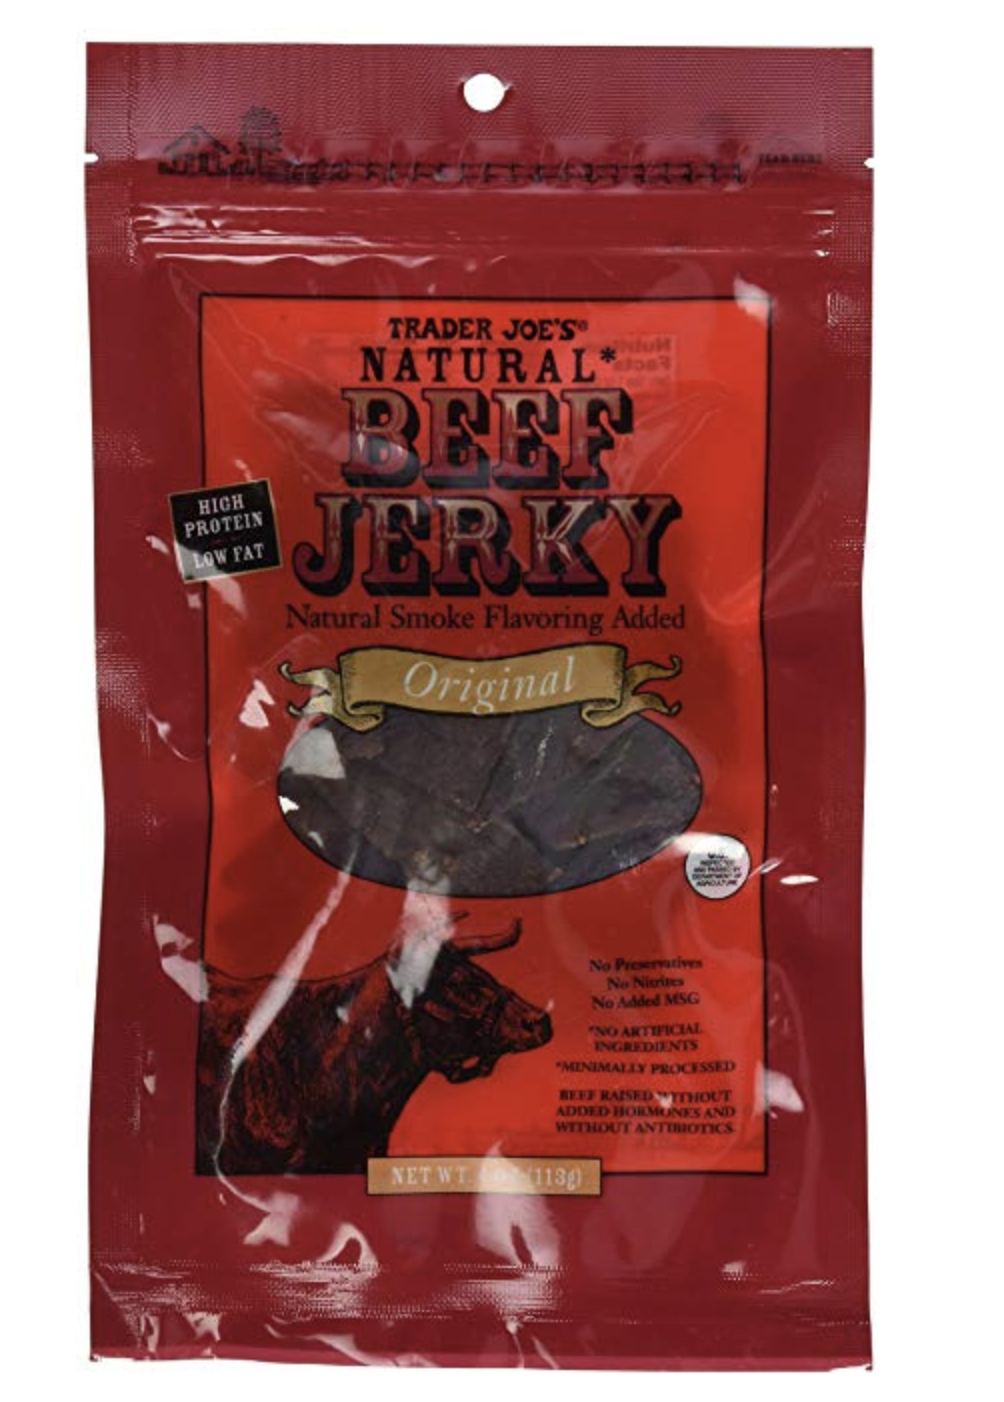 BEEF JERKY - This jerky is the best. All that hard work hiking mean your body deserves some much needed protein and this is the stuff.